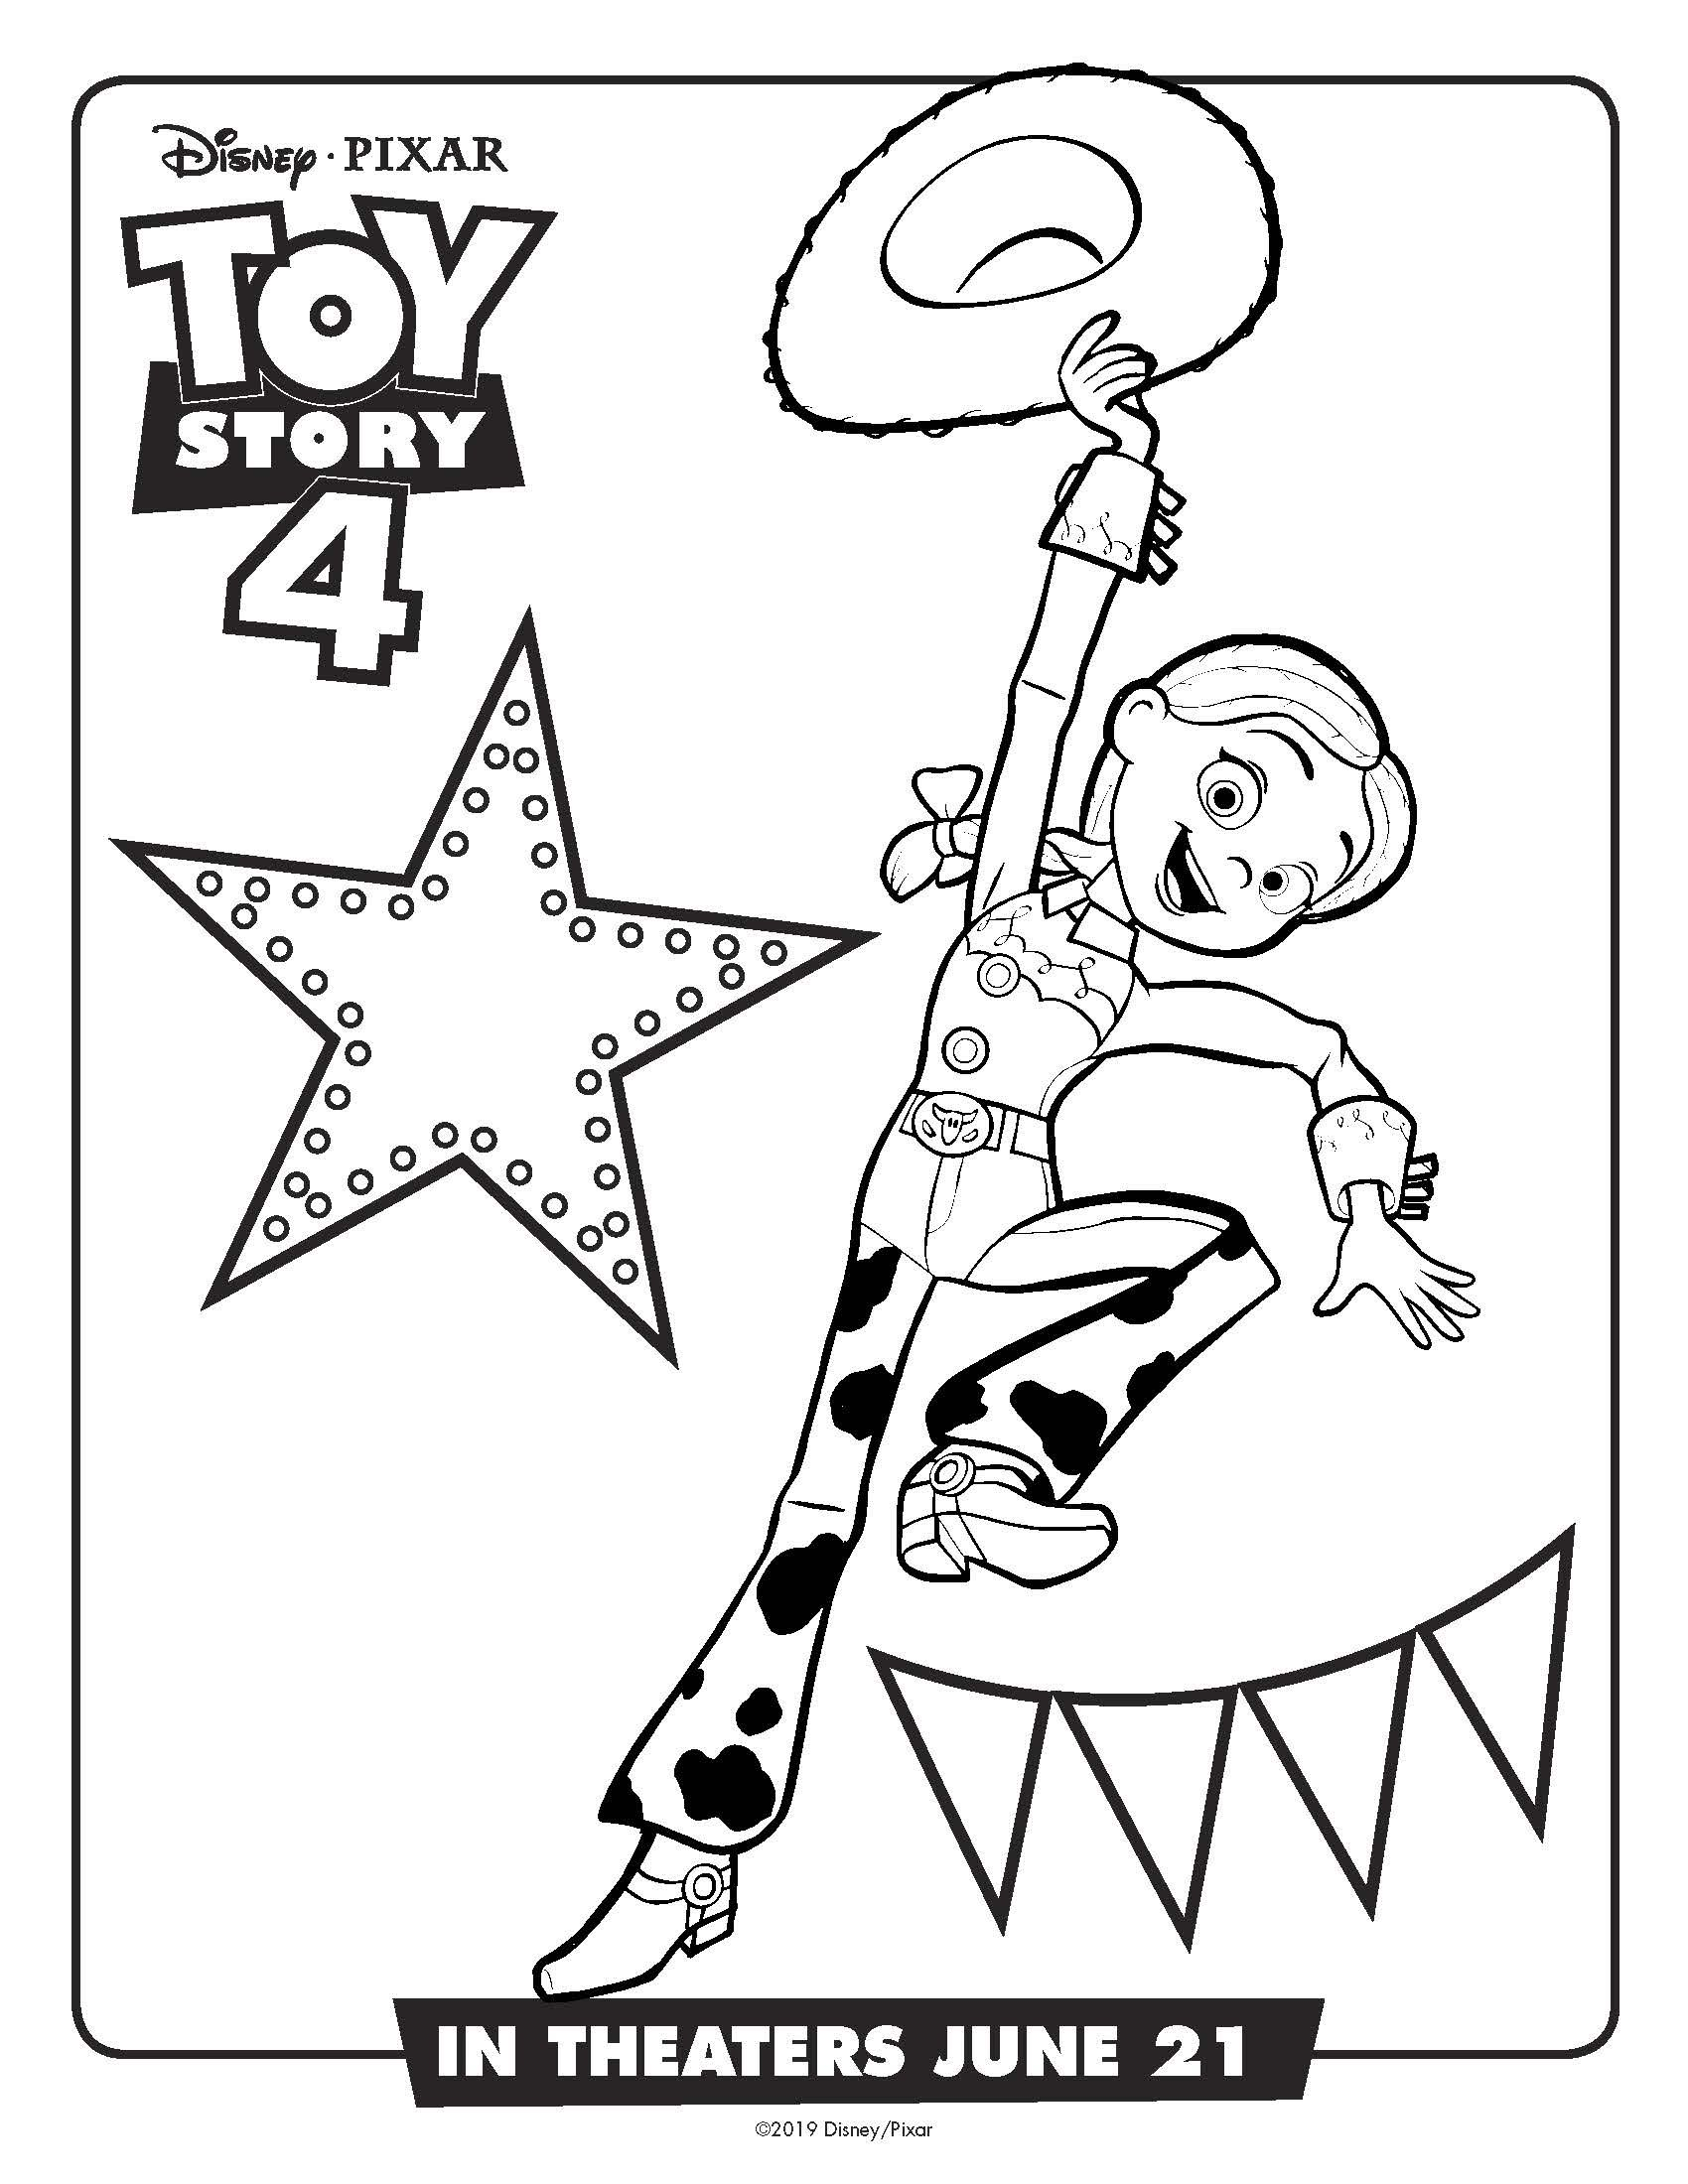 Toy Story Free Printable Coloring Sheets Toy Story Coloring Pages Disney Coloring Pages Toy Story Printables